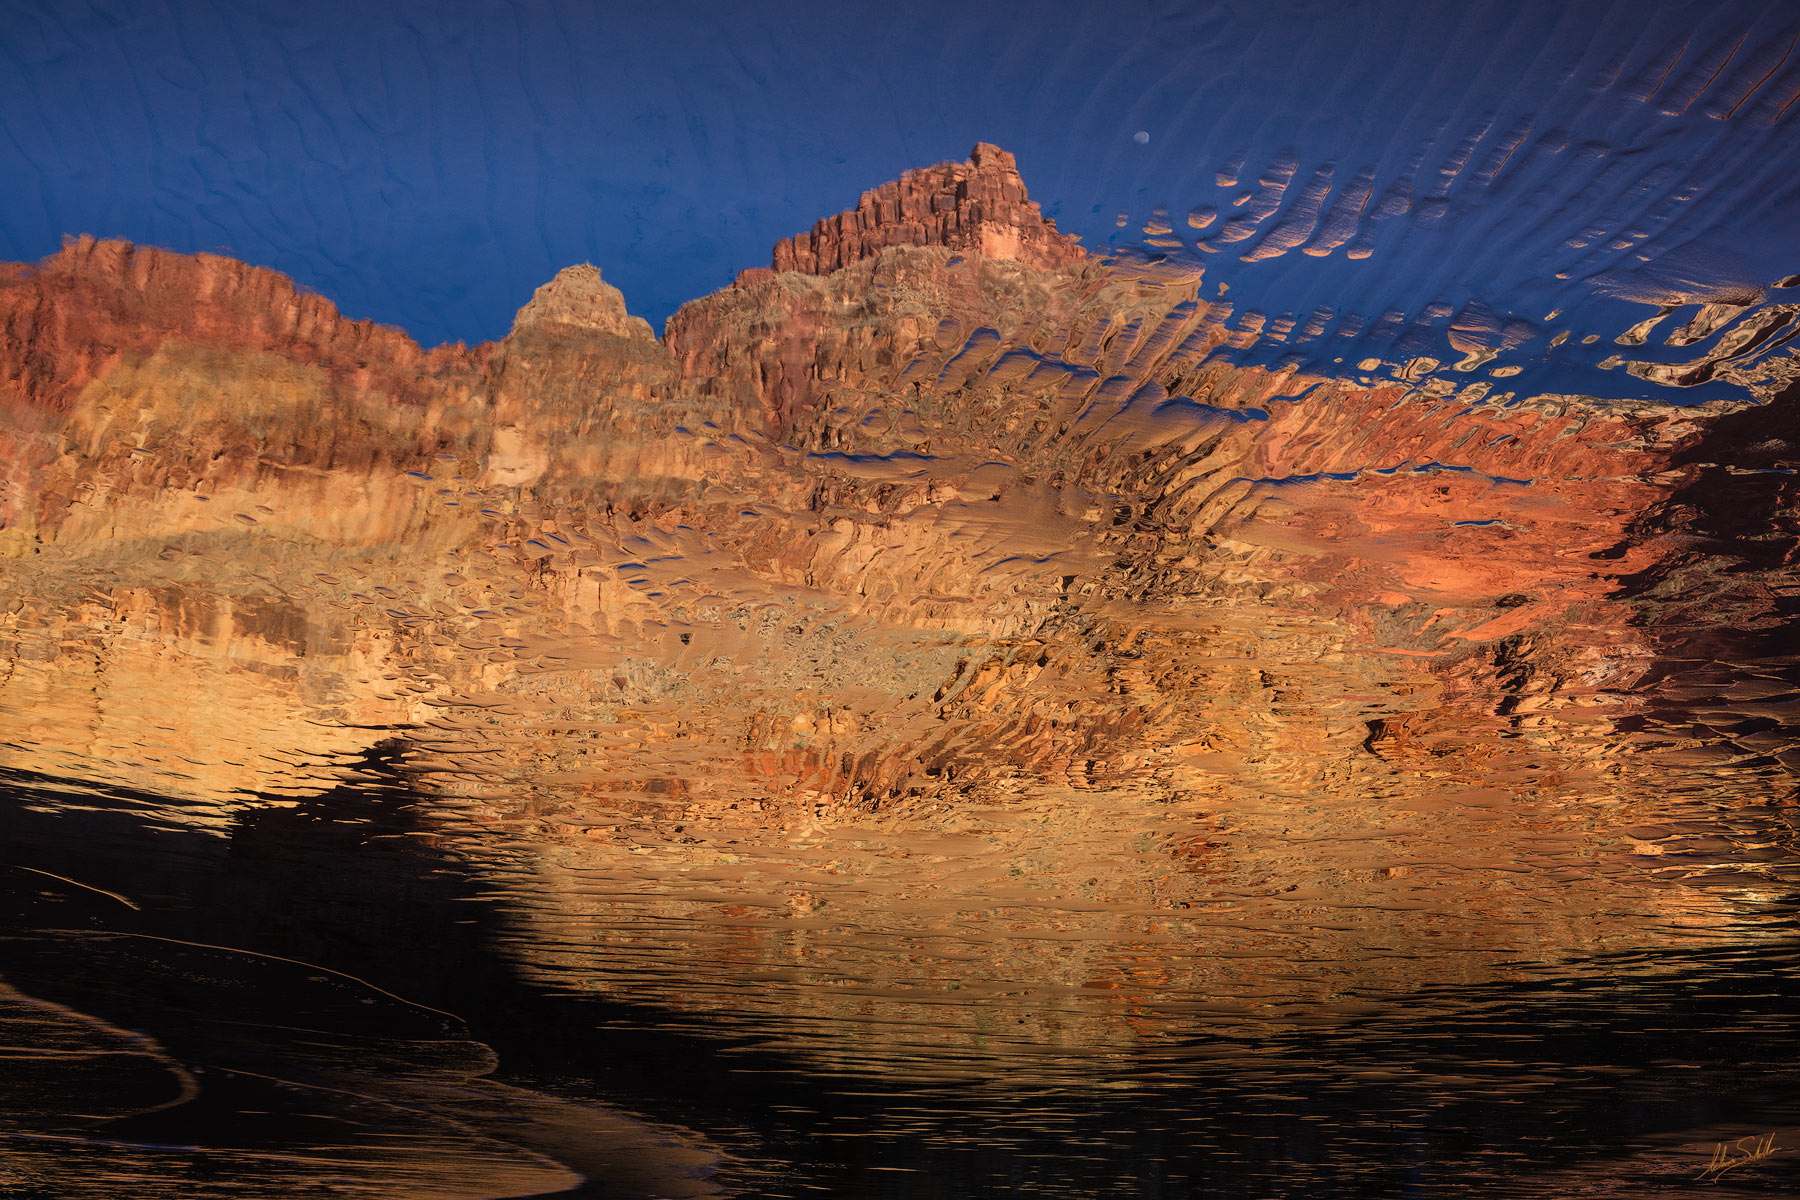 Enfilade Point and the setting moon are refeclted in the waters of the Colorado River in Grand Canyon National Park. This photo...